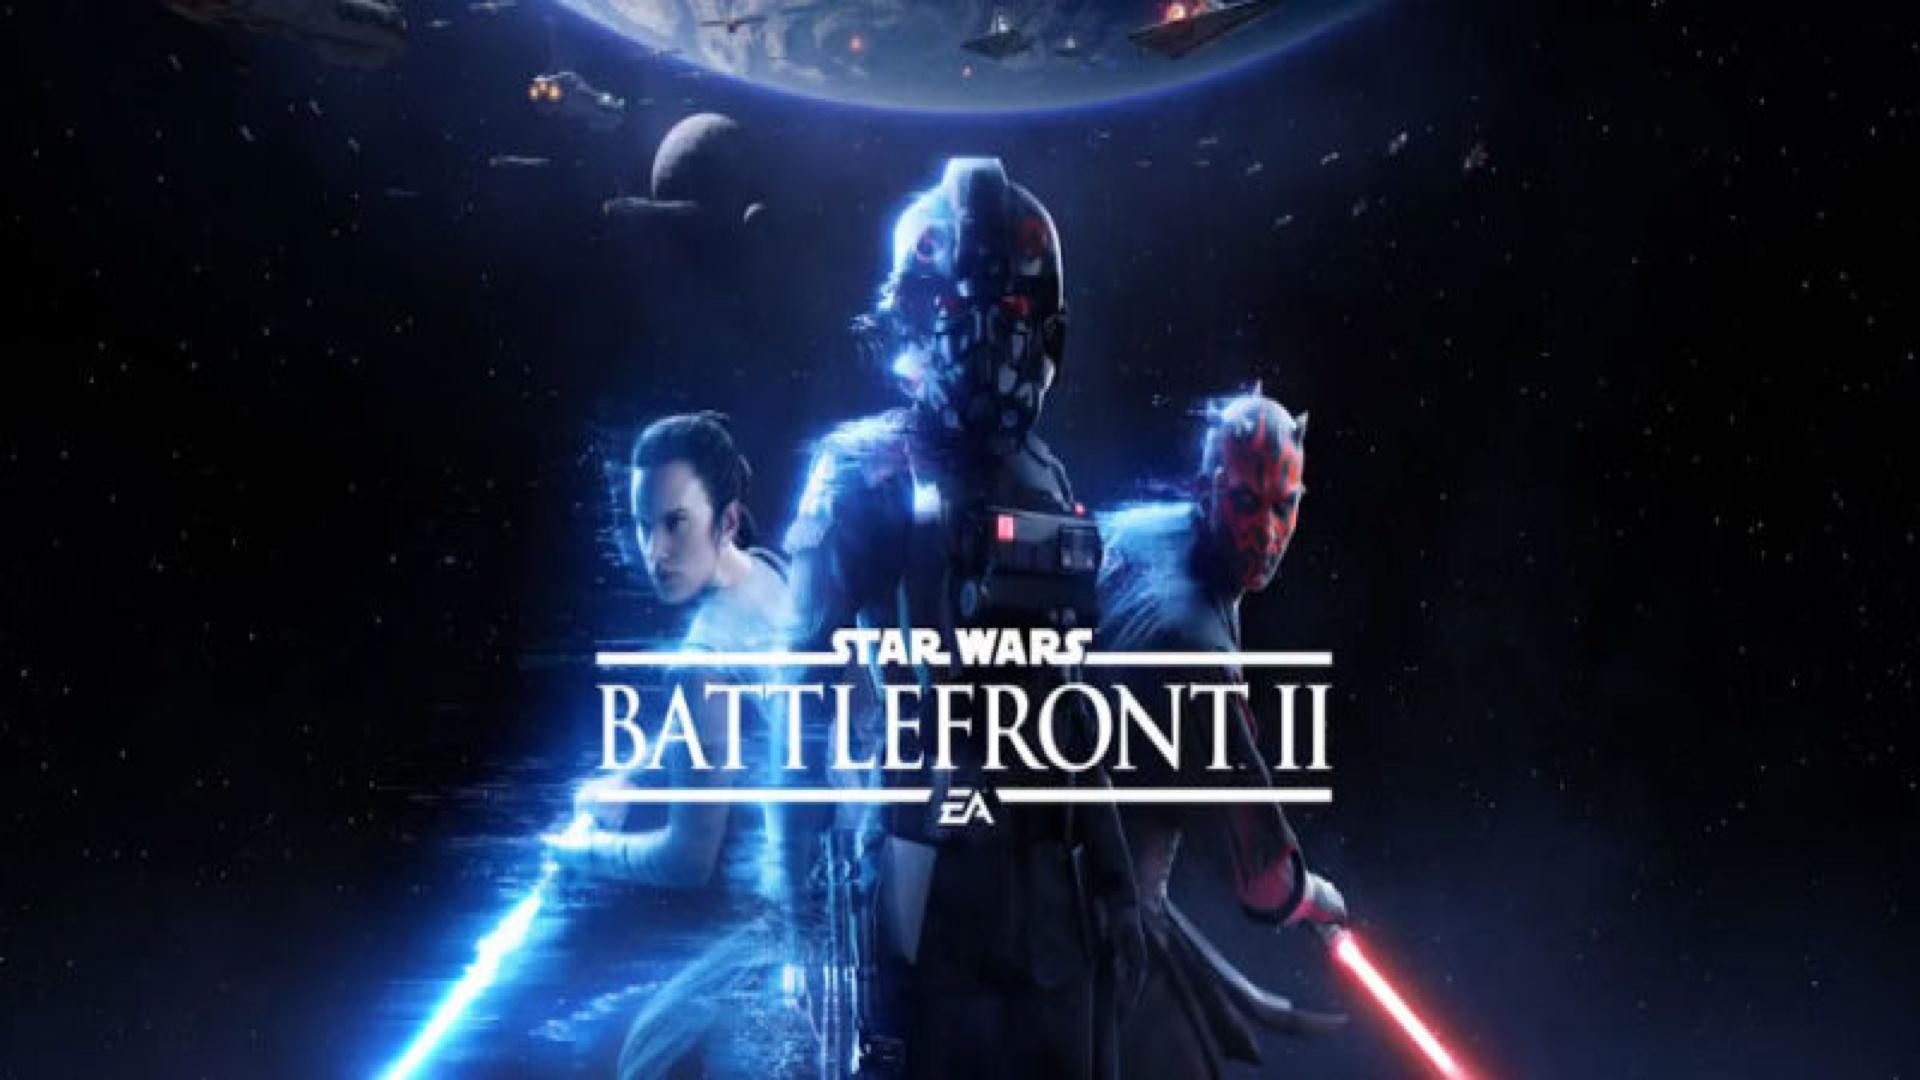 Star Wars Battlefront Ii Wallpapers Wallpaper Cave